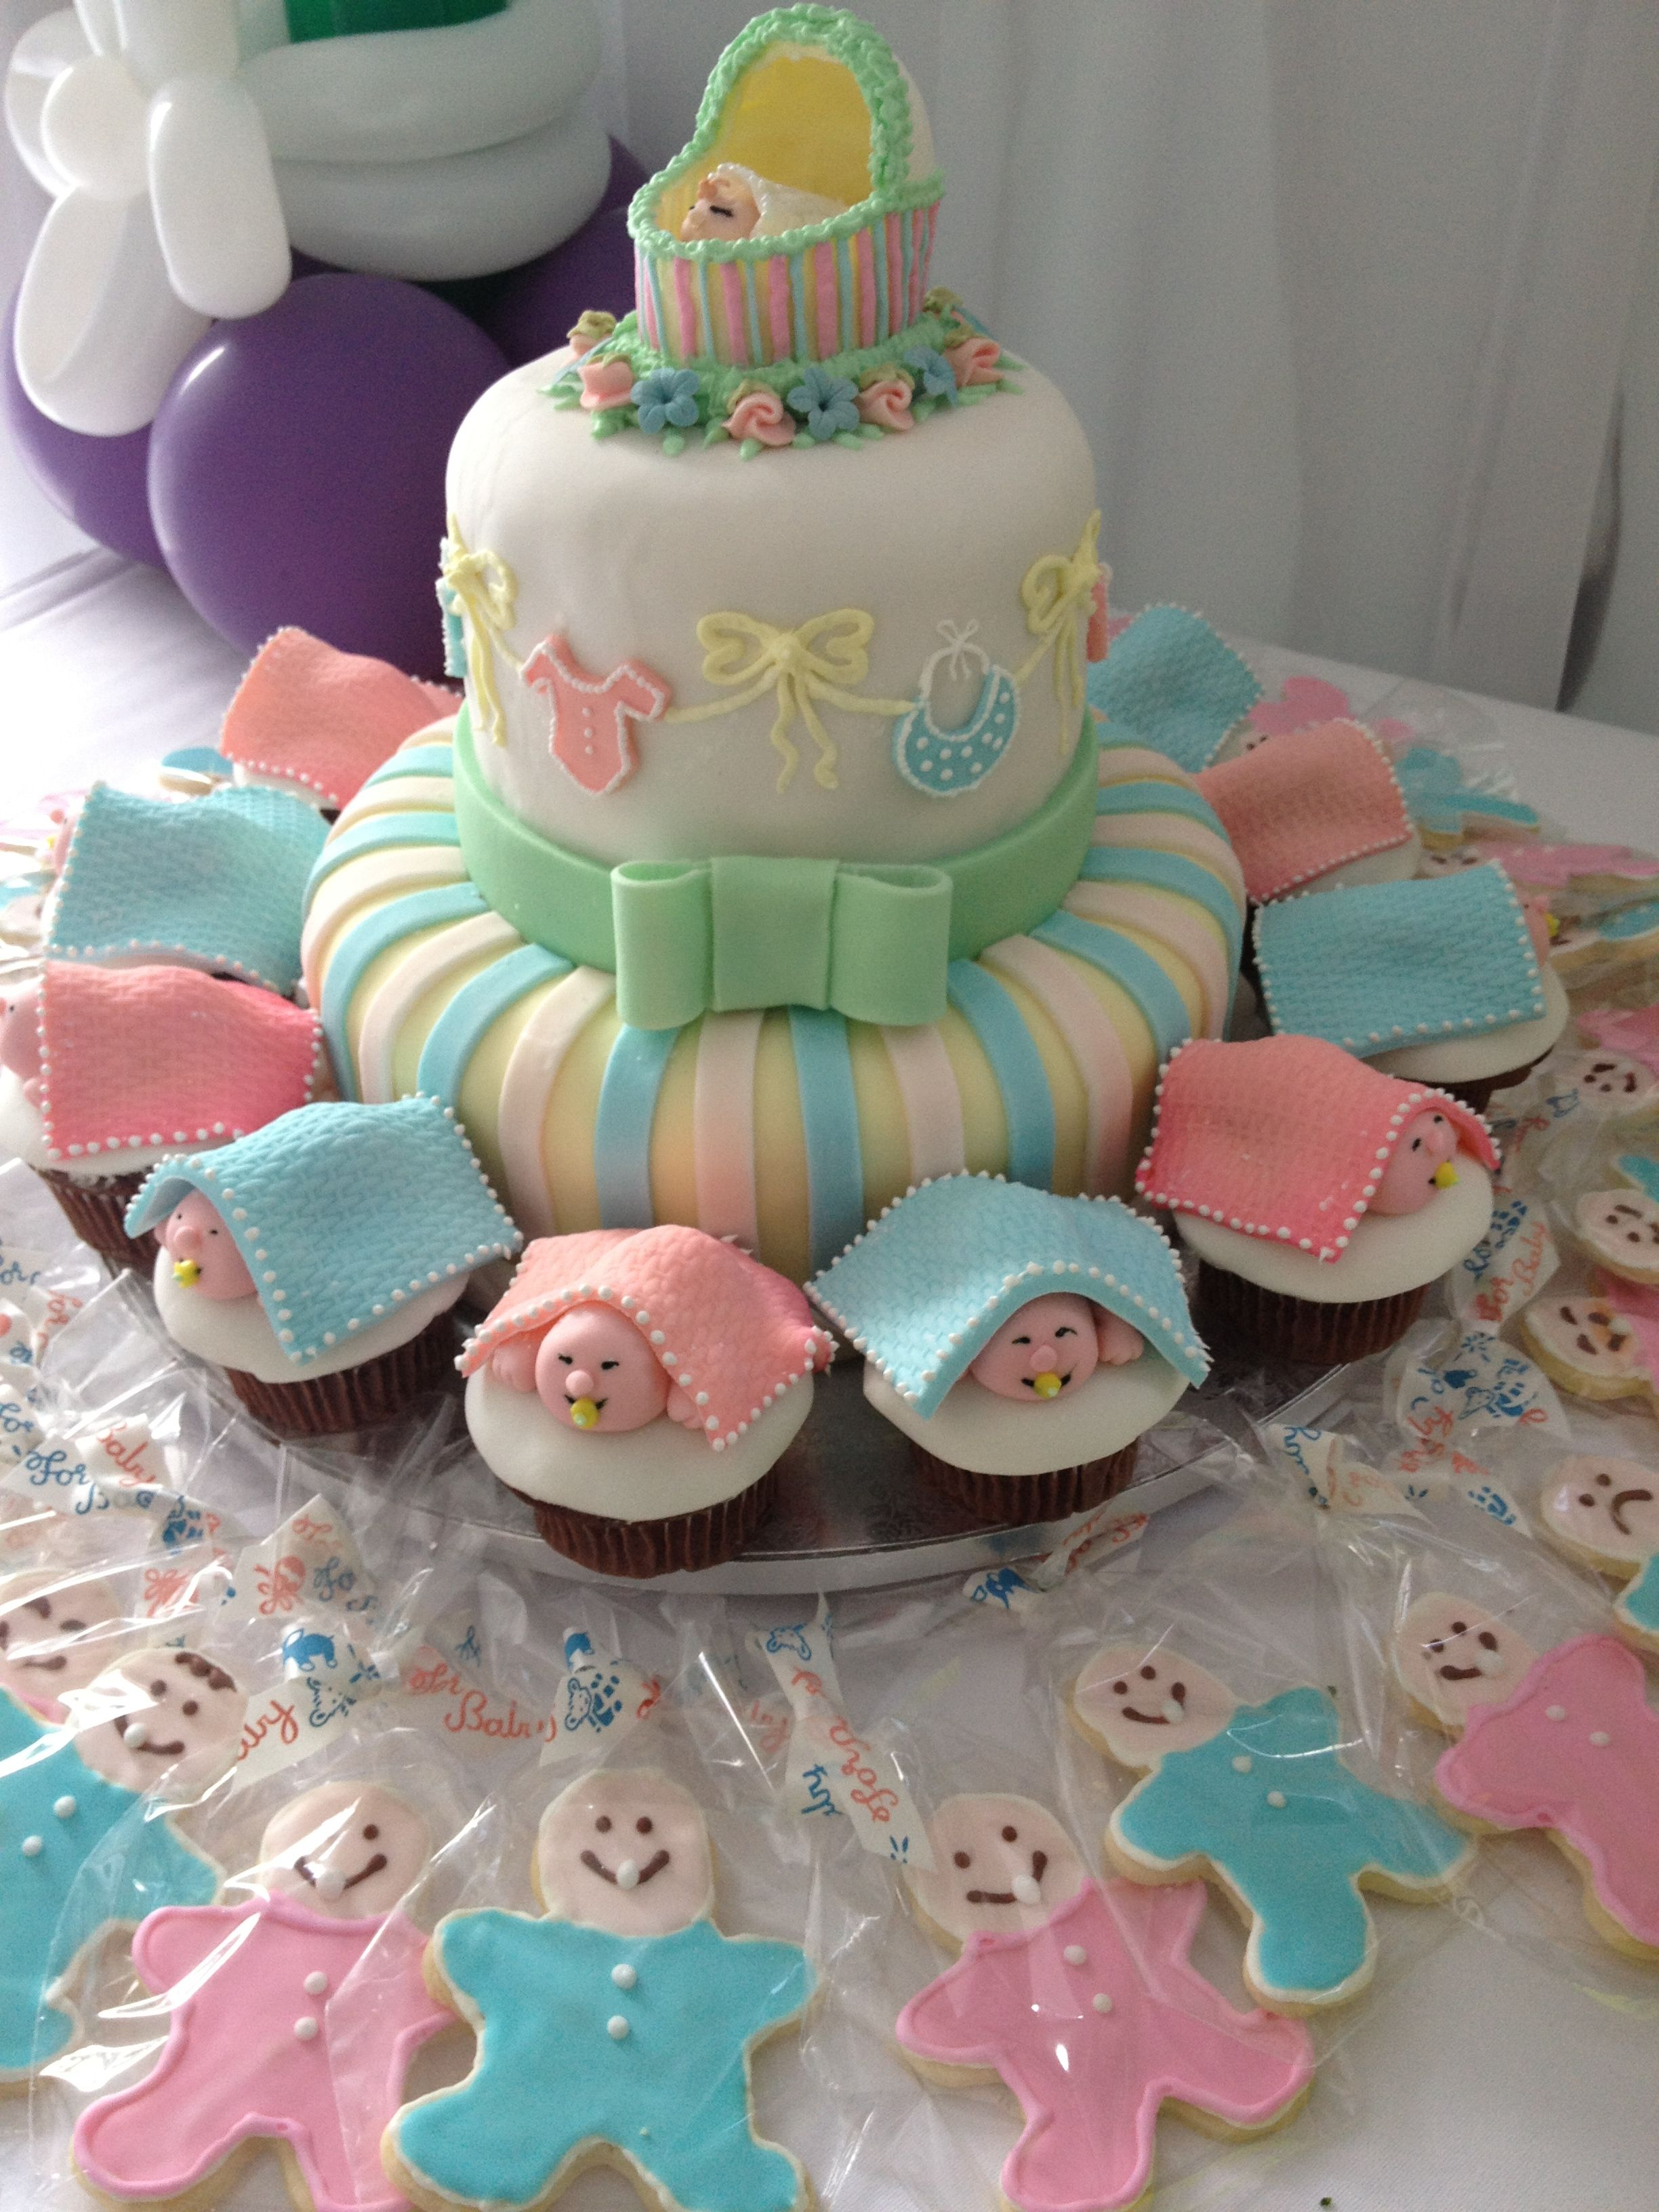 Baby Shower, Cake & Cupcakes - Goldilocks bakery